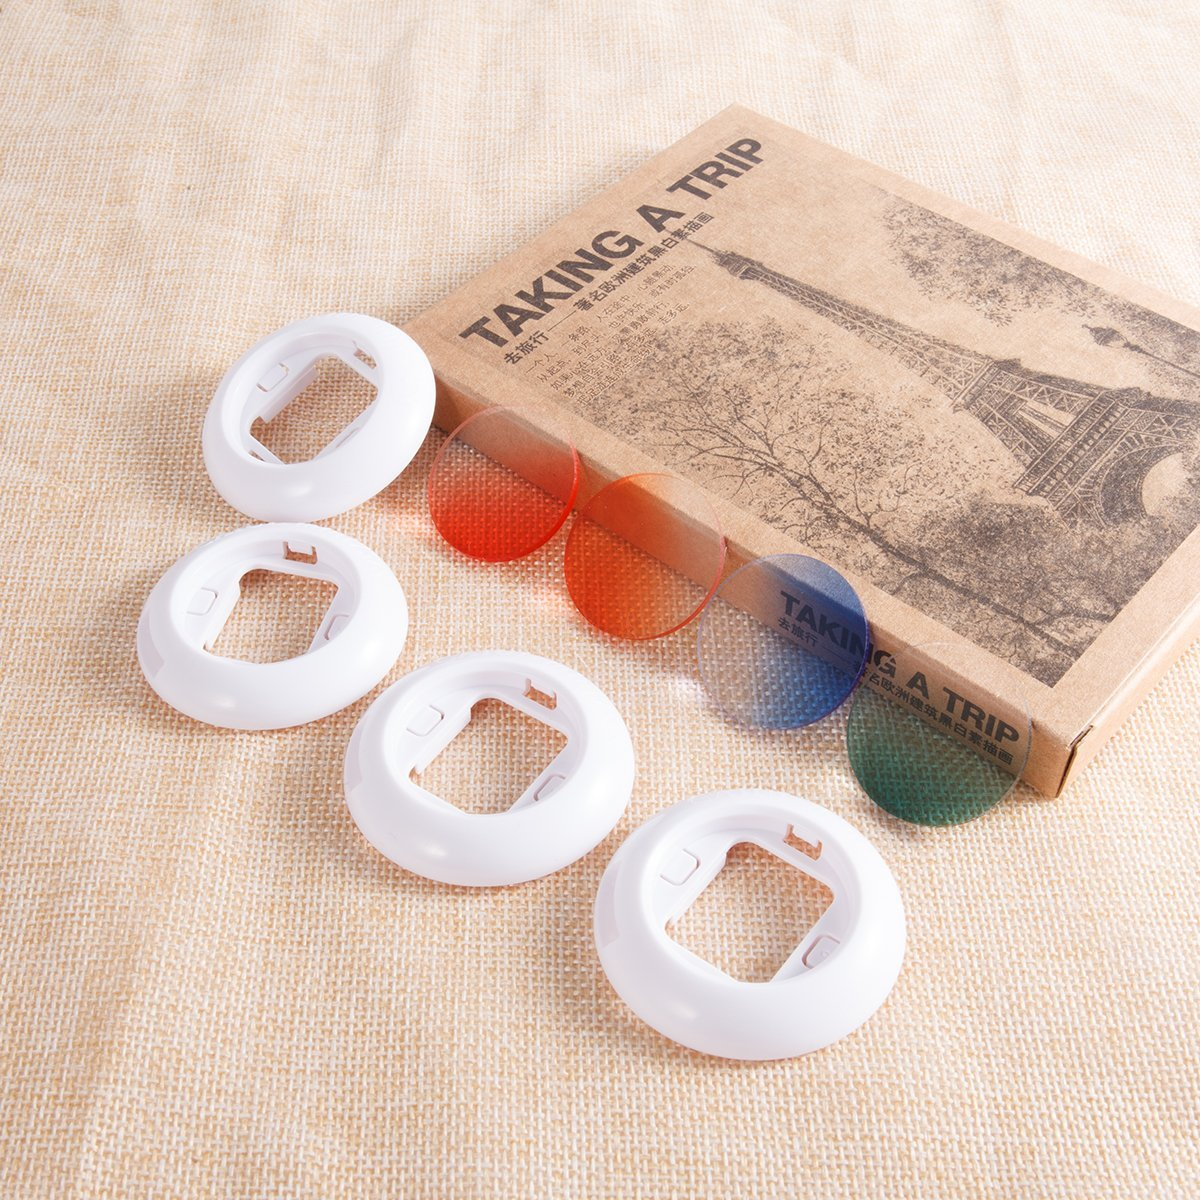 """CAIUL Instax Mini Gradient Color Close Up Lens Filter Set for Fujifilm Instax Mini 8 8+ 9 7s (4 pcs) """